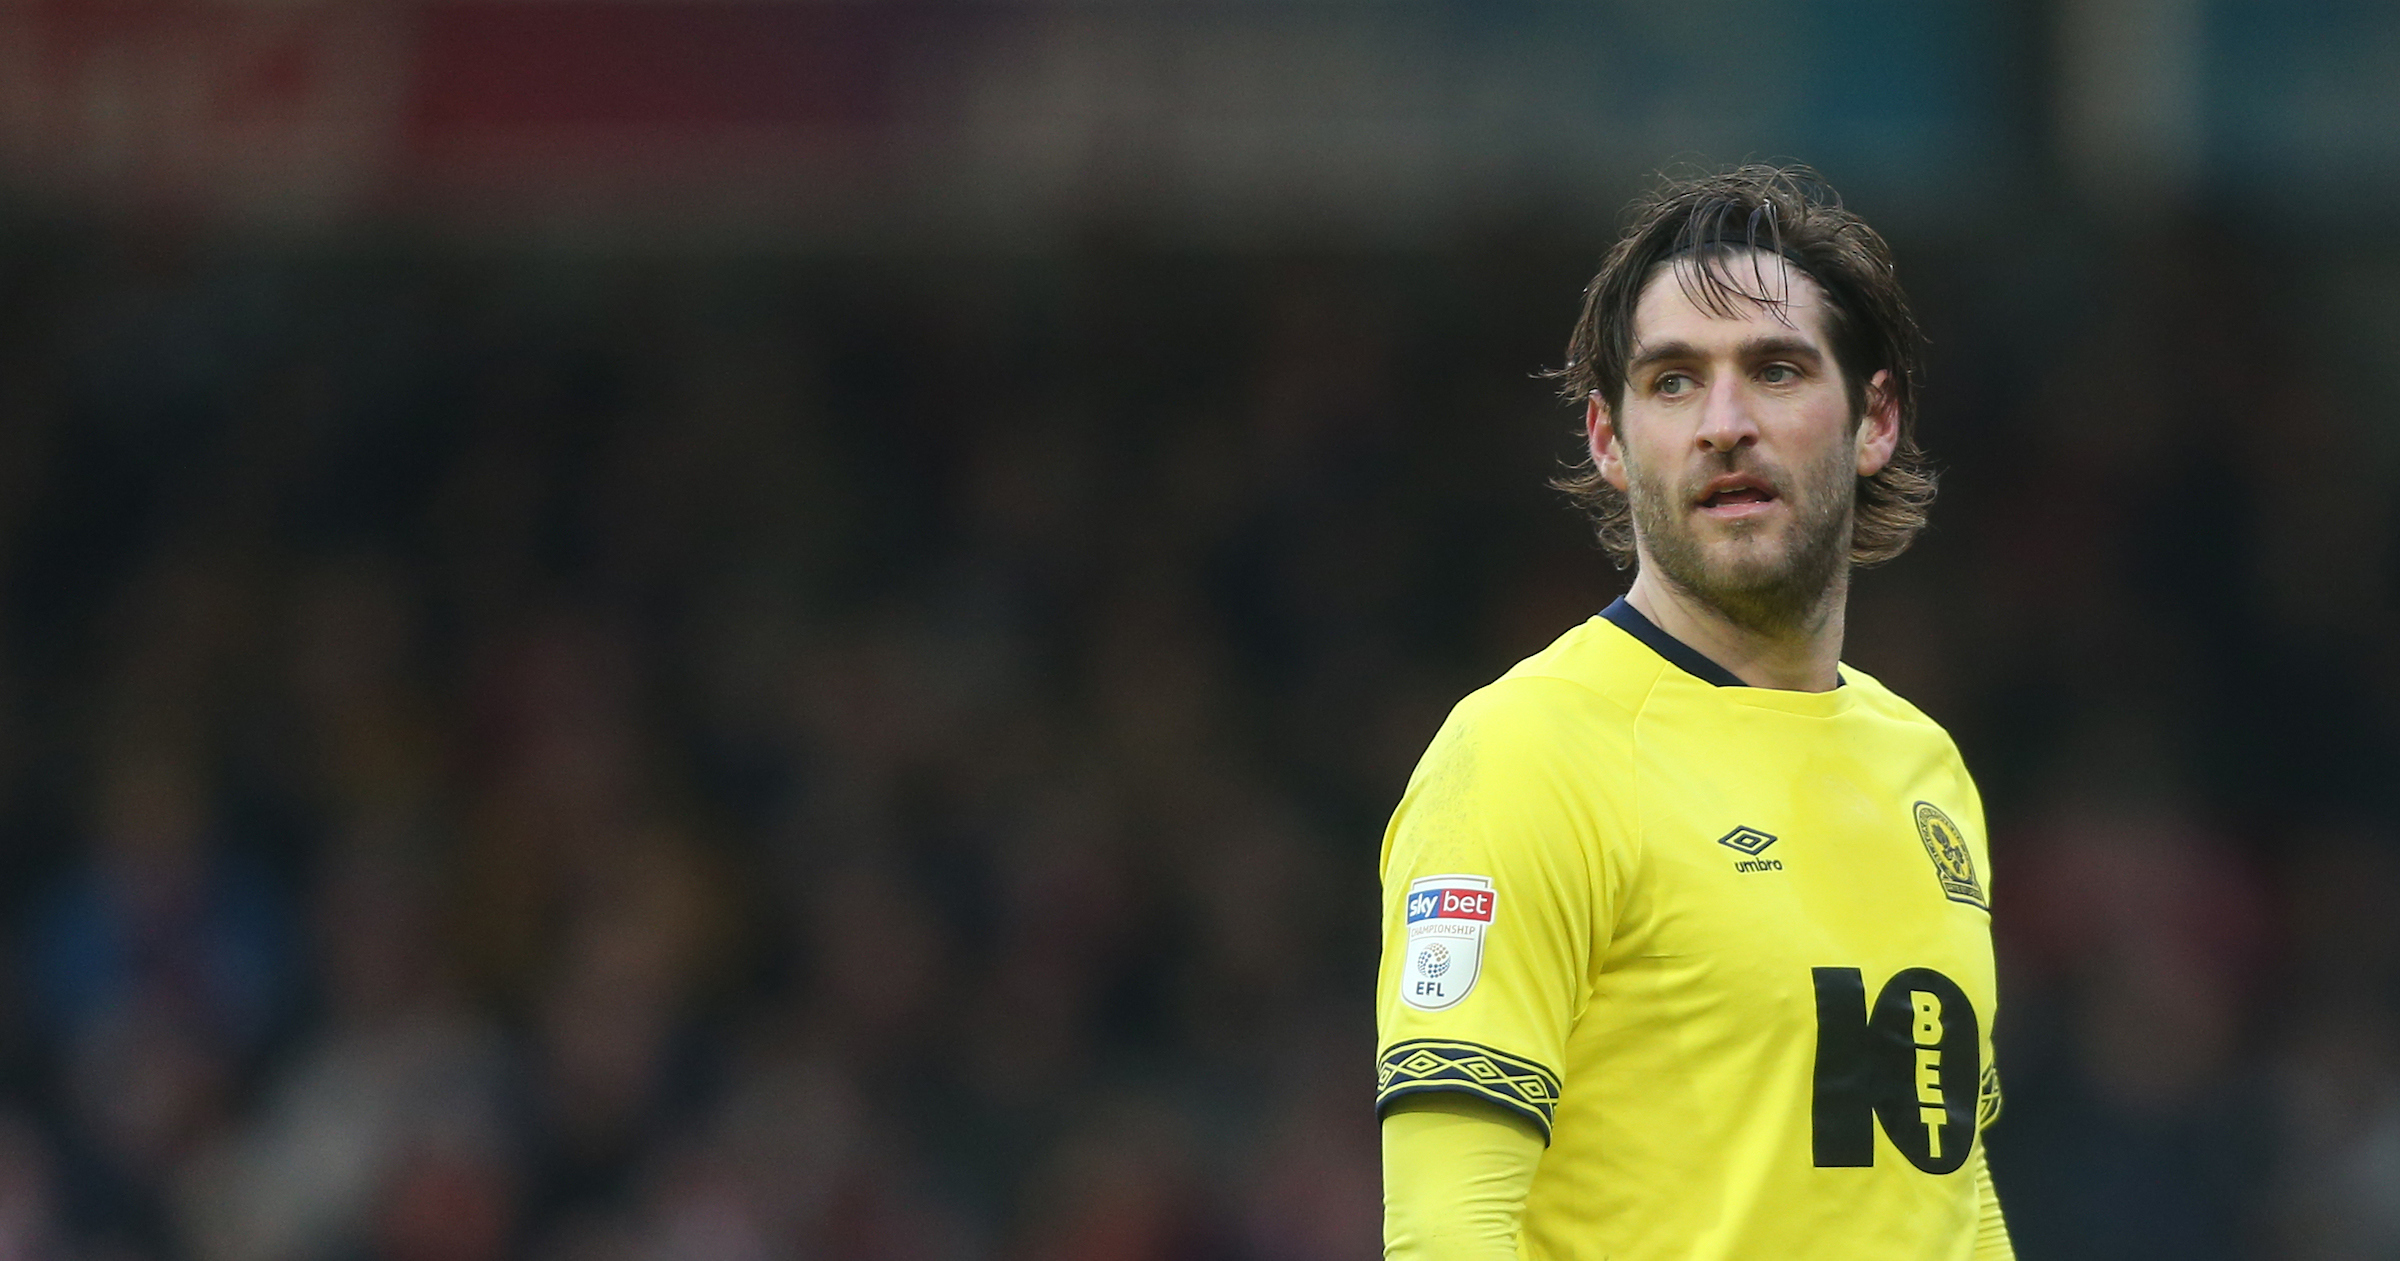 Danny Graham scoerd his 11th goal of the season against Brentford before coming off injured